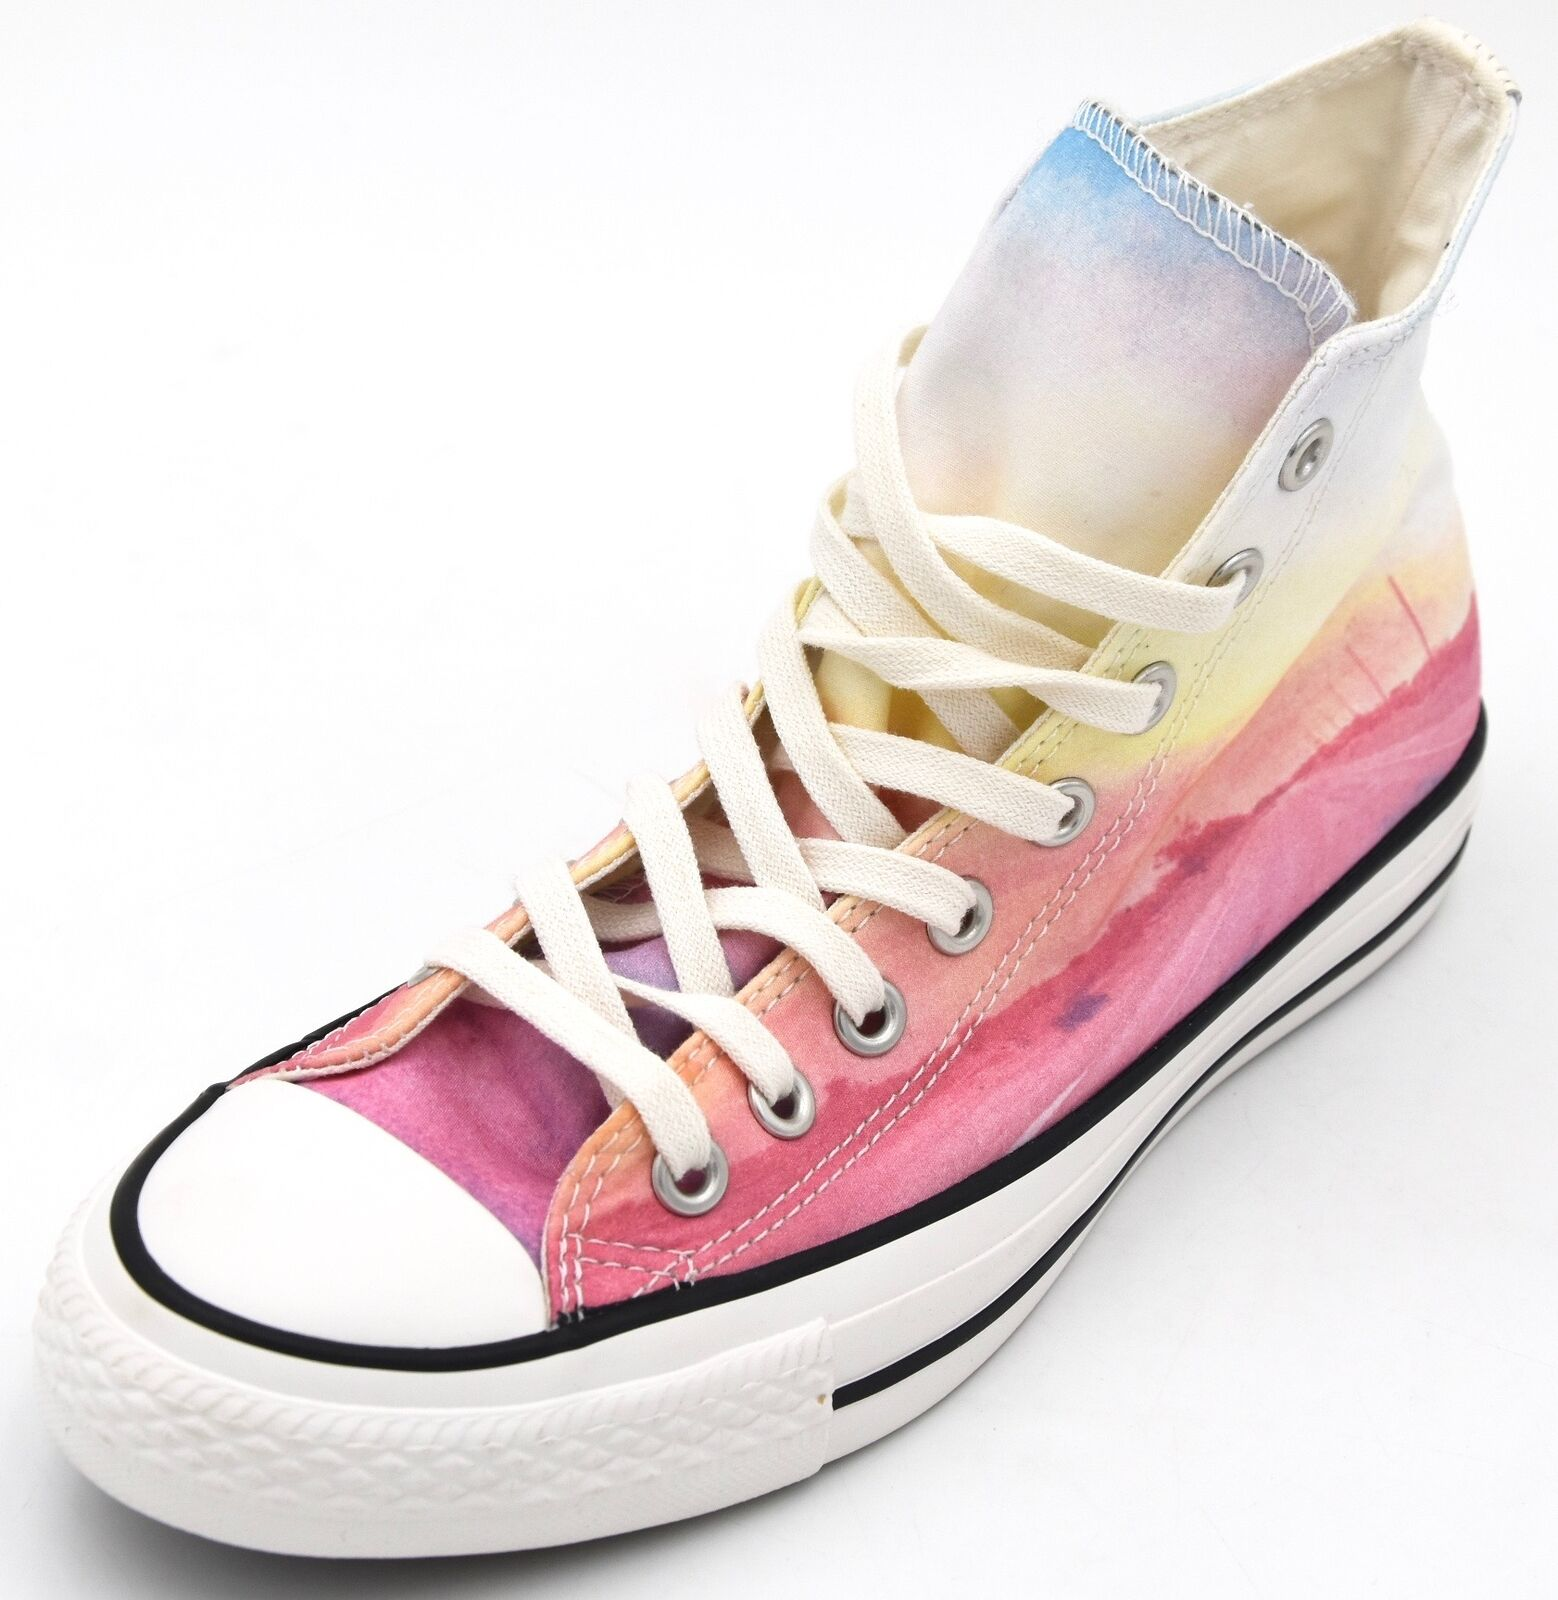 CONVERSE ALL STAR WOMAN baskets chaussures CASUAL FREE TIME CANVAS CODE 551629C